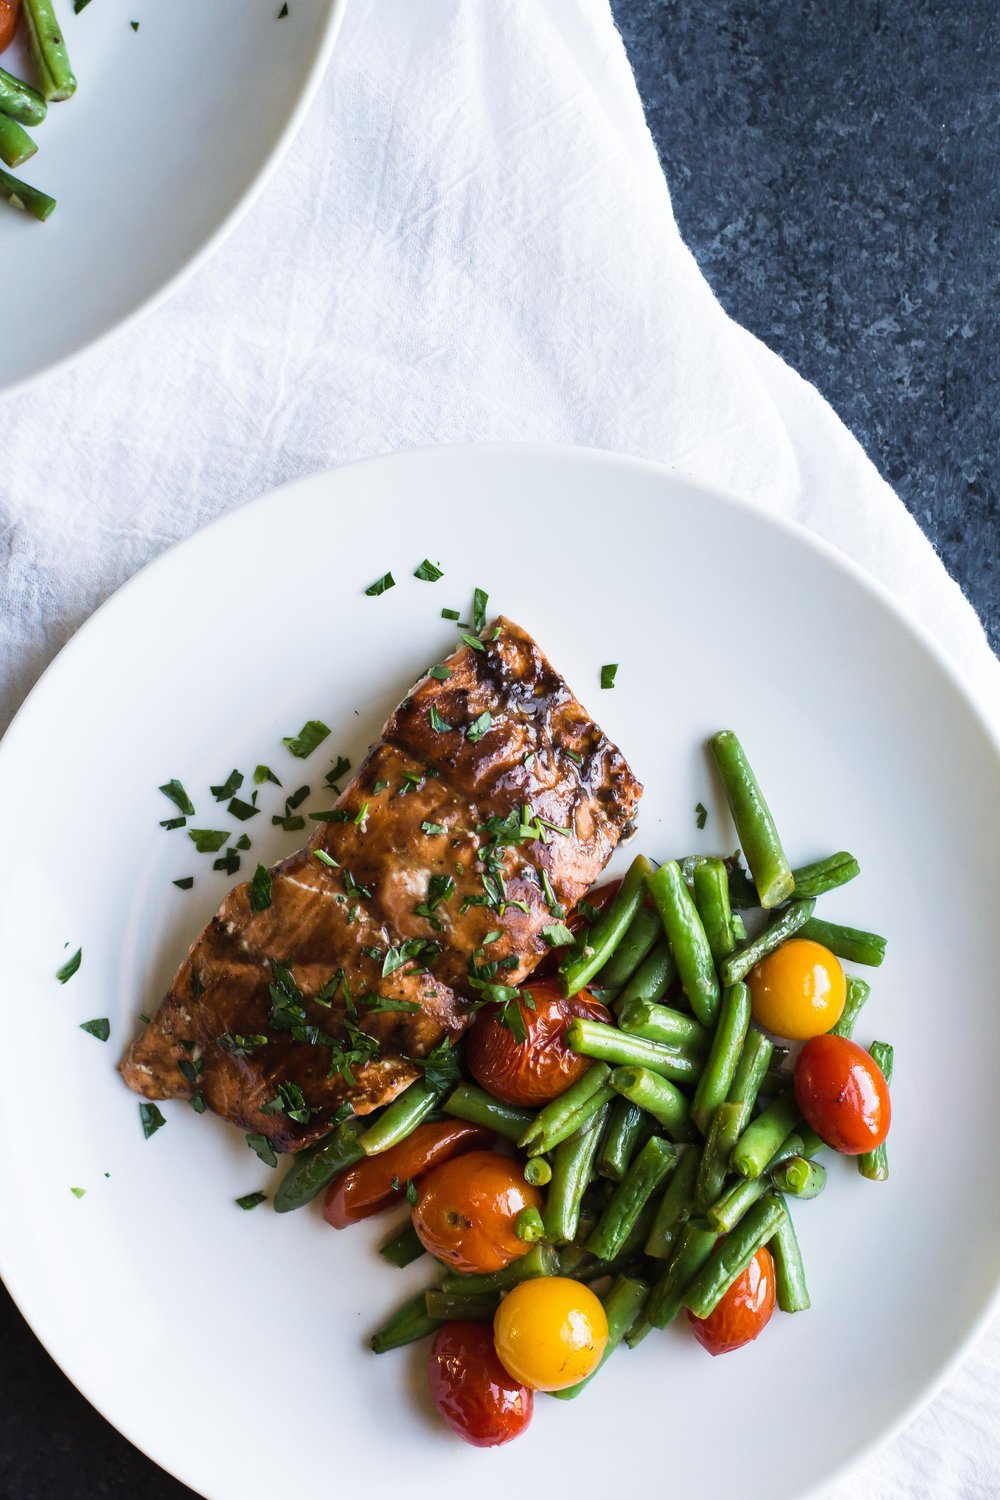 Sheet Pan Balsamic Salmon with Roasted Tomatoes + Green Beans - Sarah J. Hauser